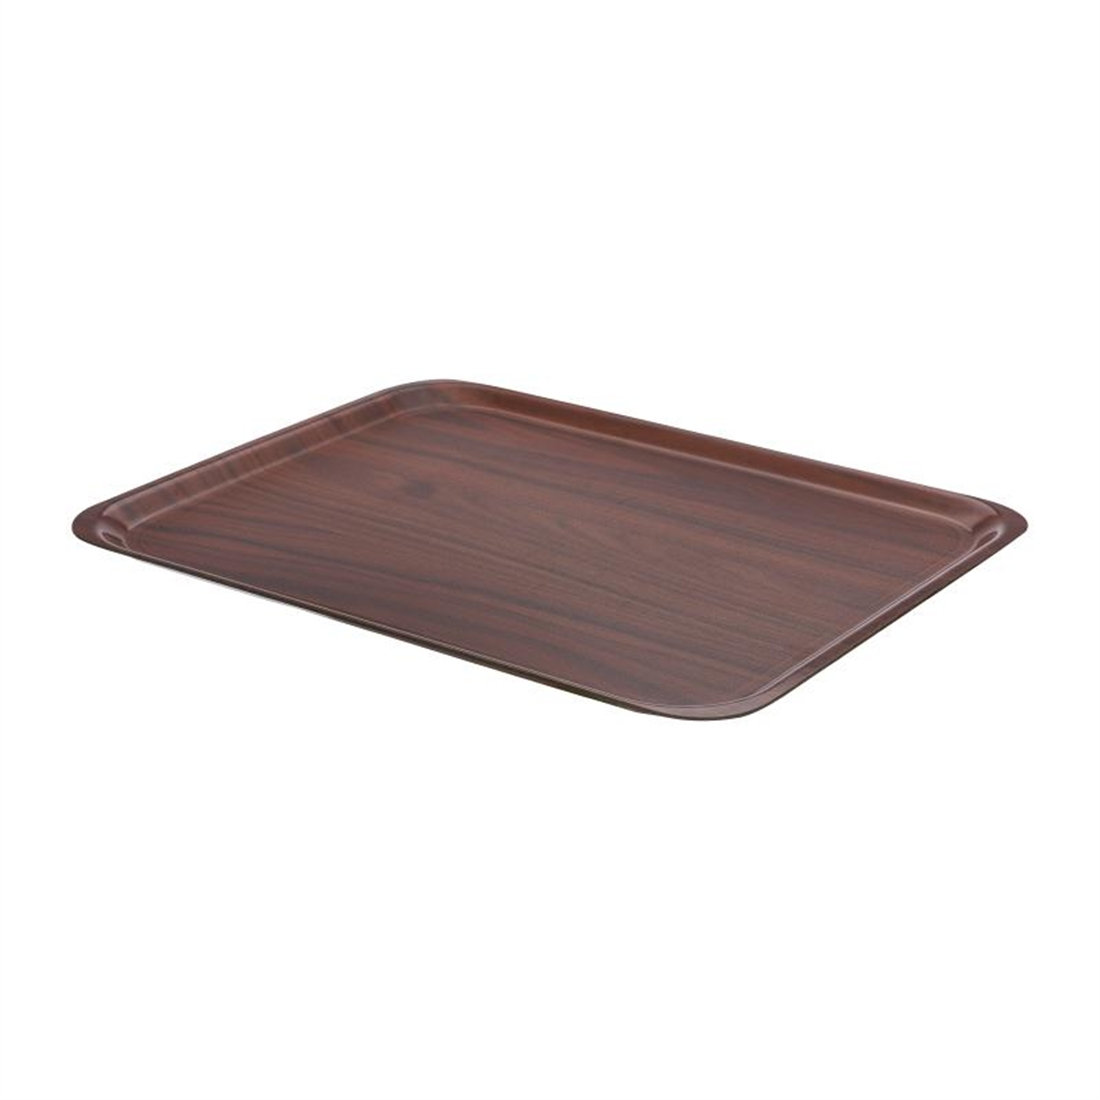 Cambro Mykonos Food Tray Walnut 460mm